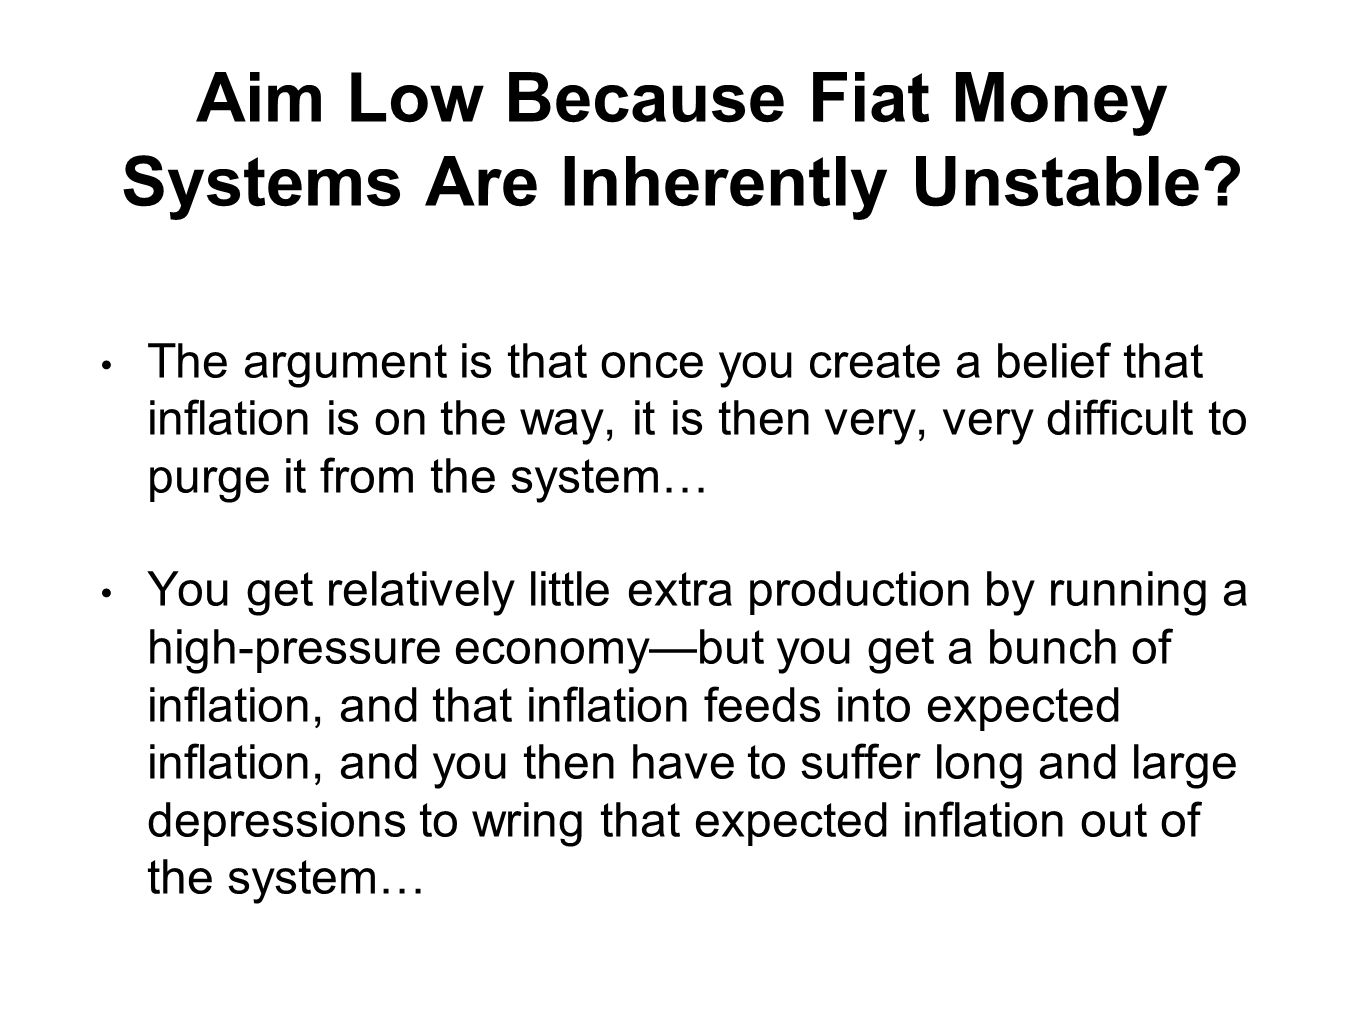 Aim Low Because Fiat Money Systems Are Inherently Unstable.